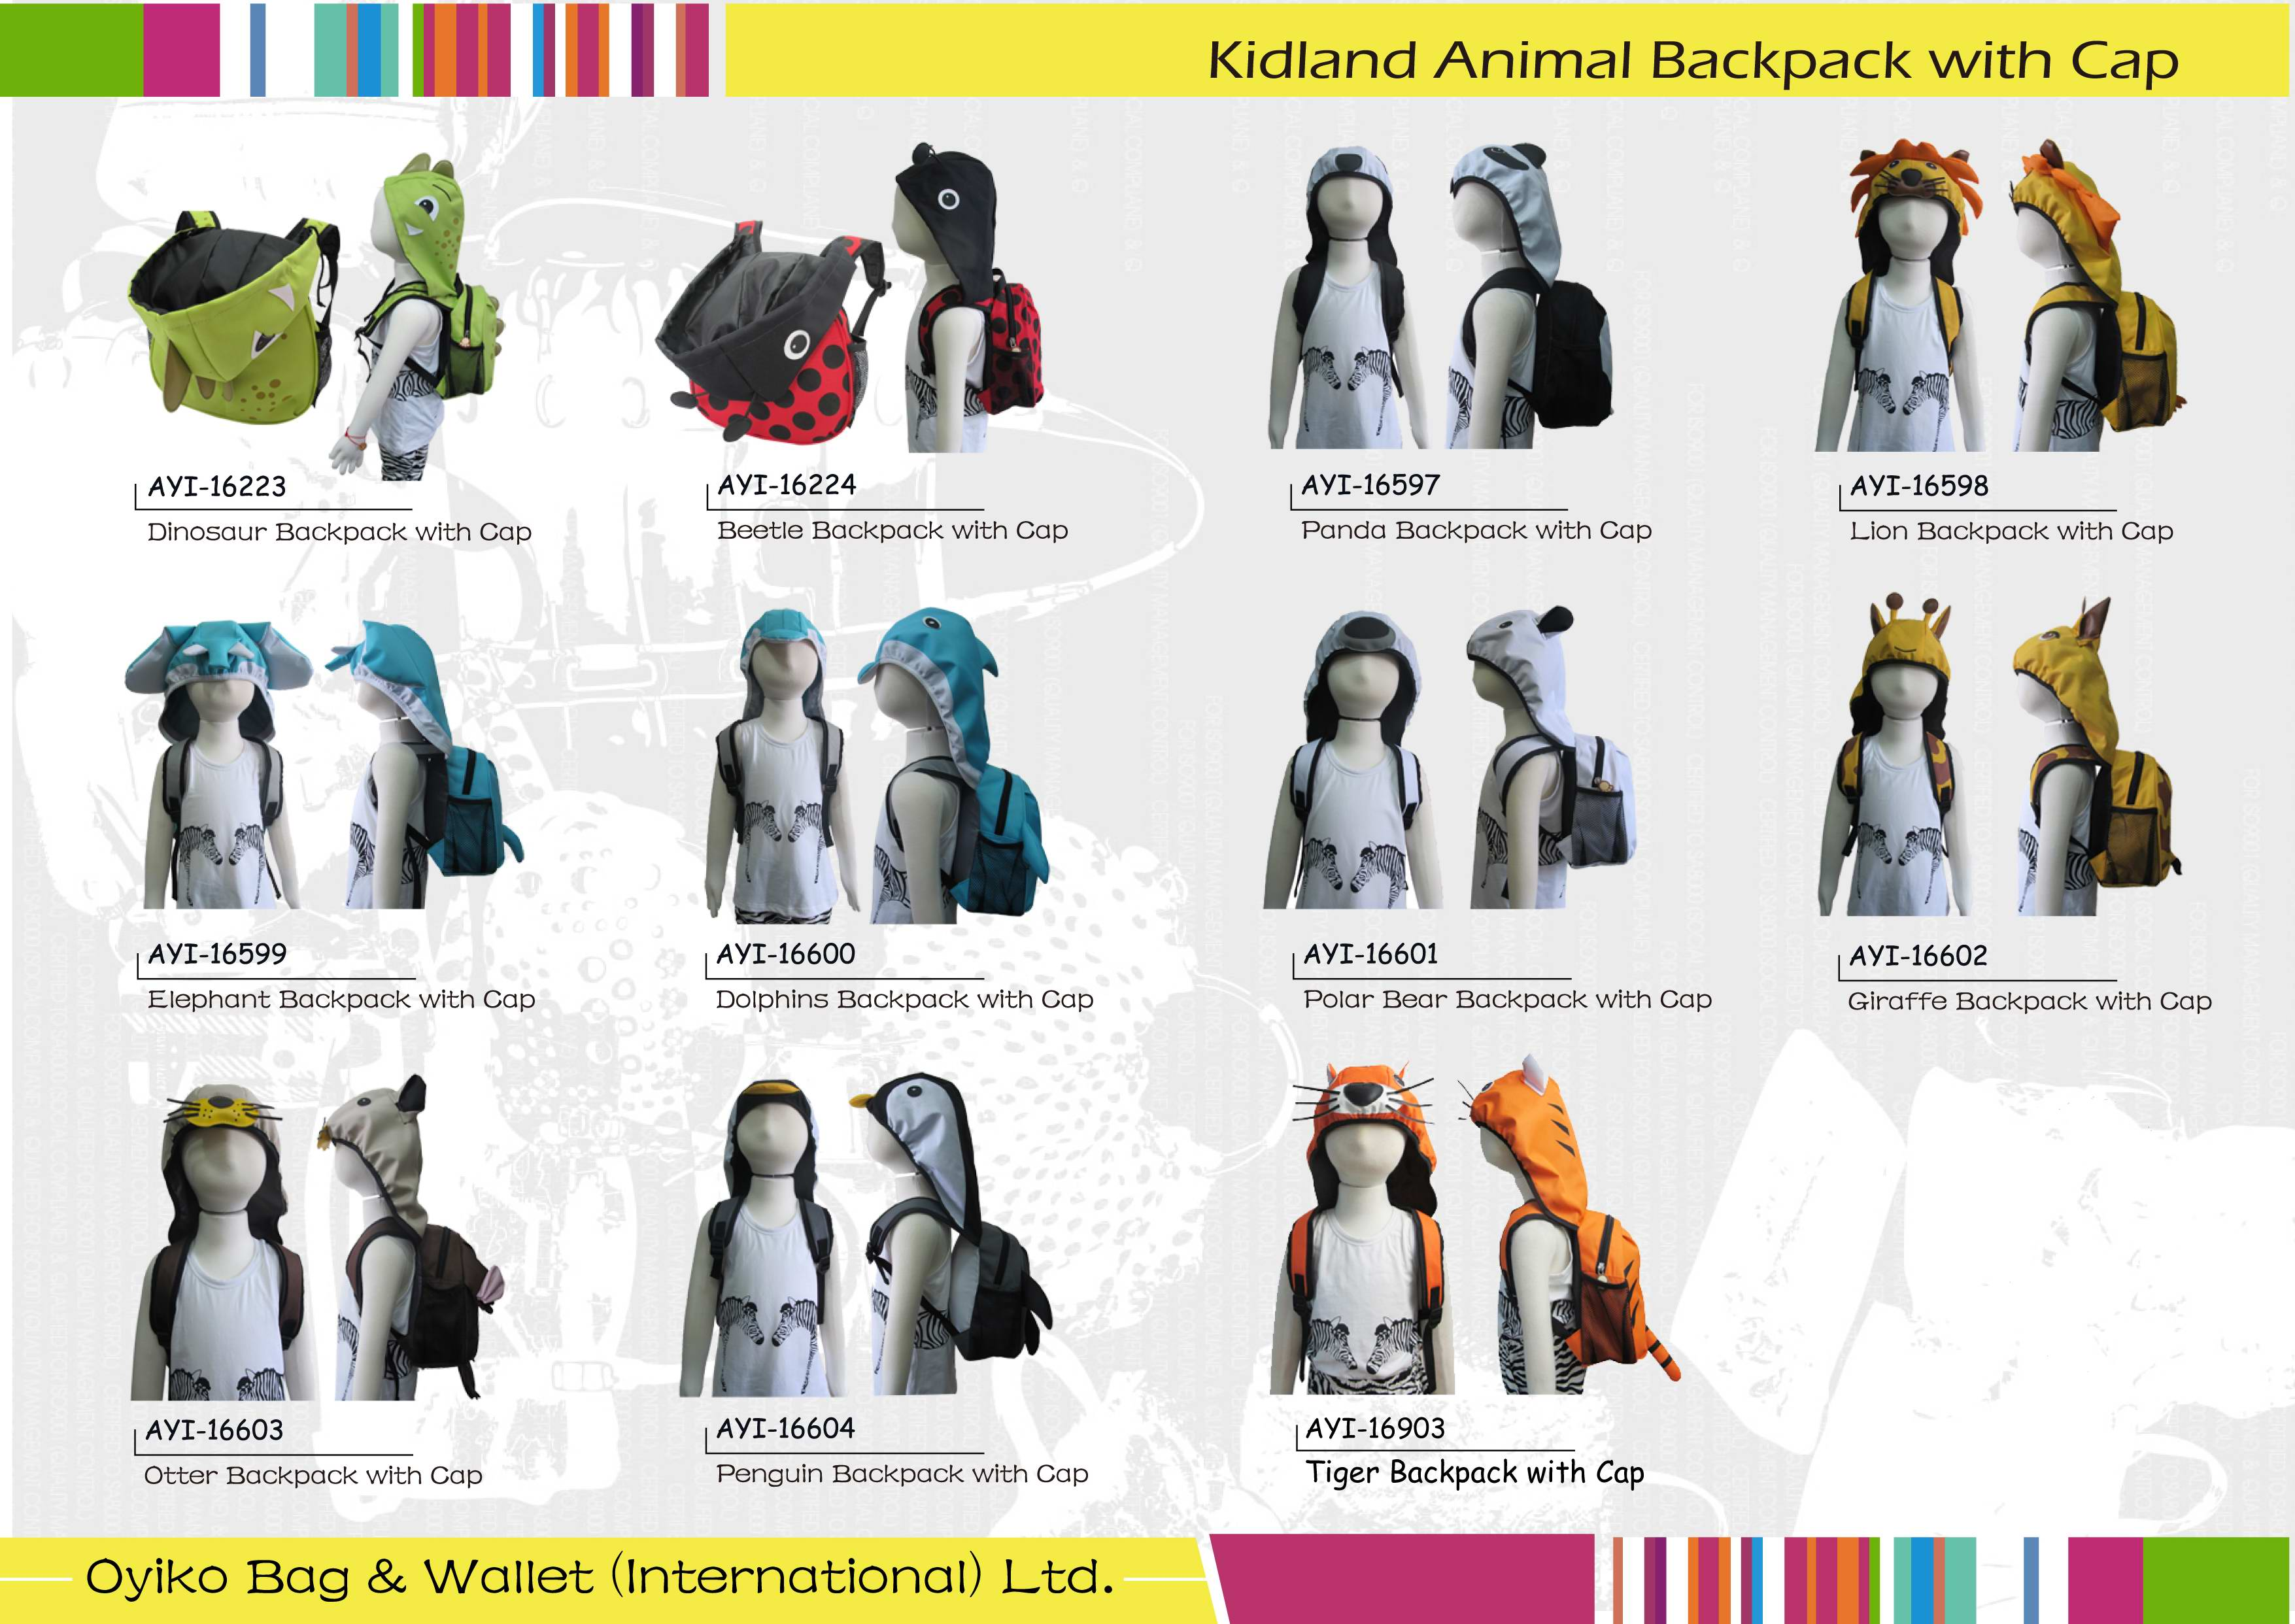 Kidland Animal Backpack with Cap.jpg